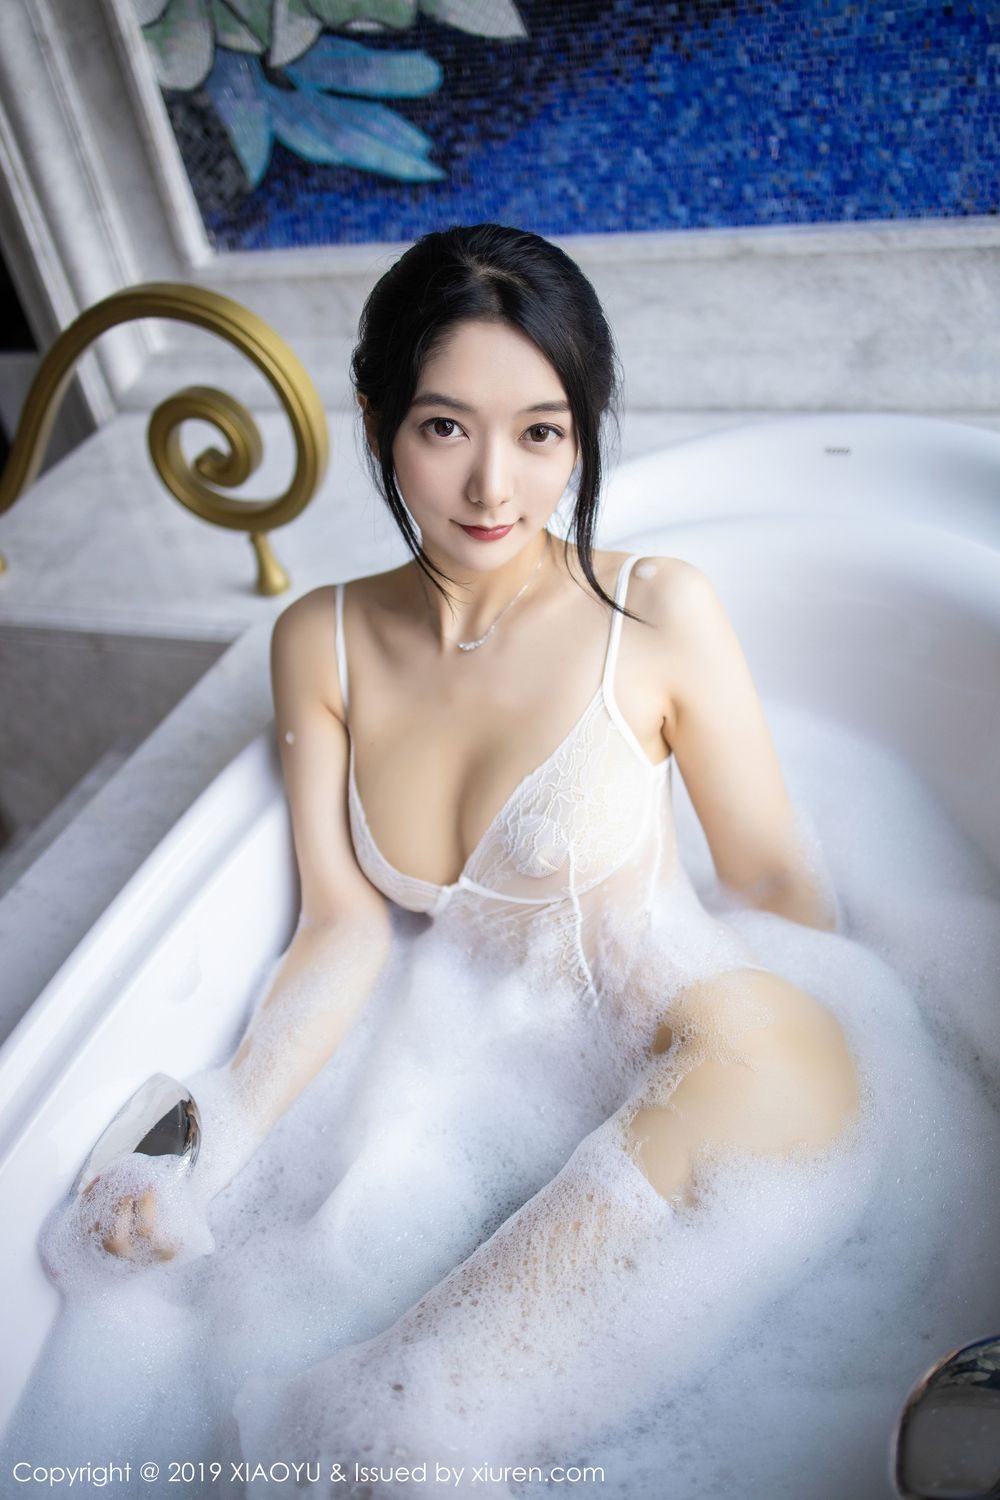 [XiaoYu] Vol.223 Xiao Re Ba 17P, Di Yi, Tall, Wet, XiaoYu